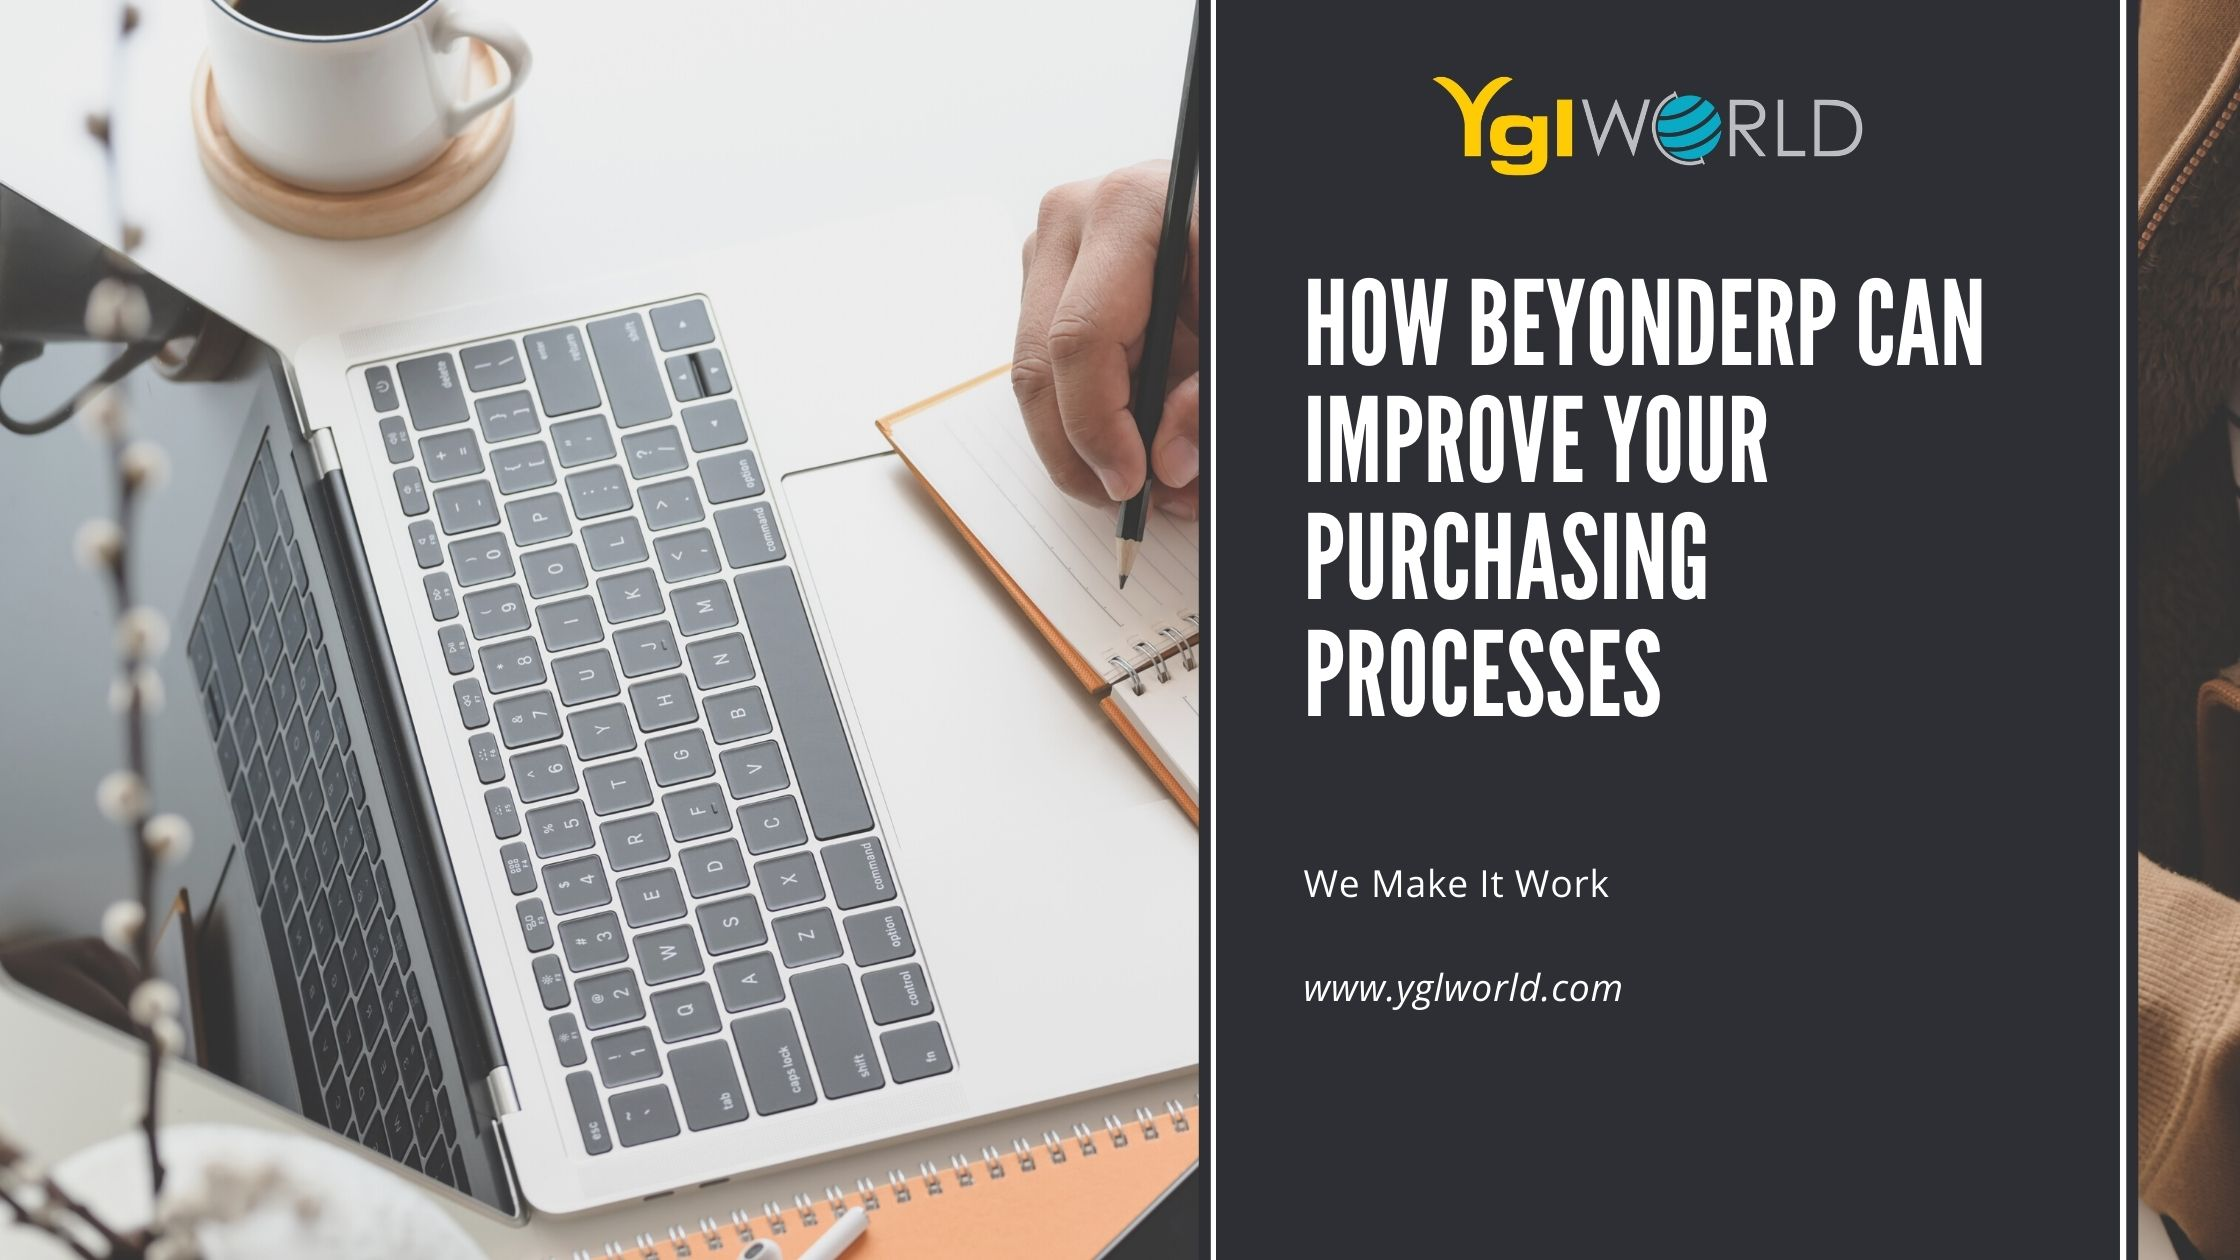 How BeyondERP can improve your purchasing processes